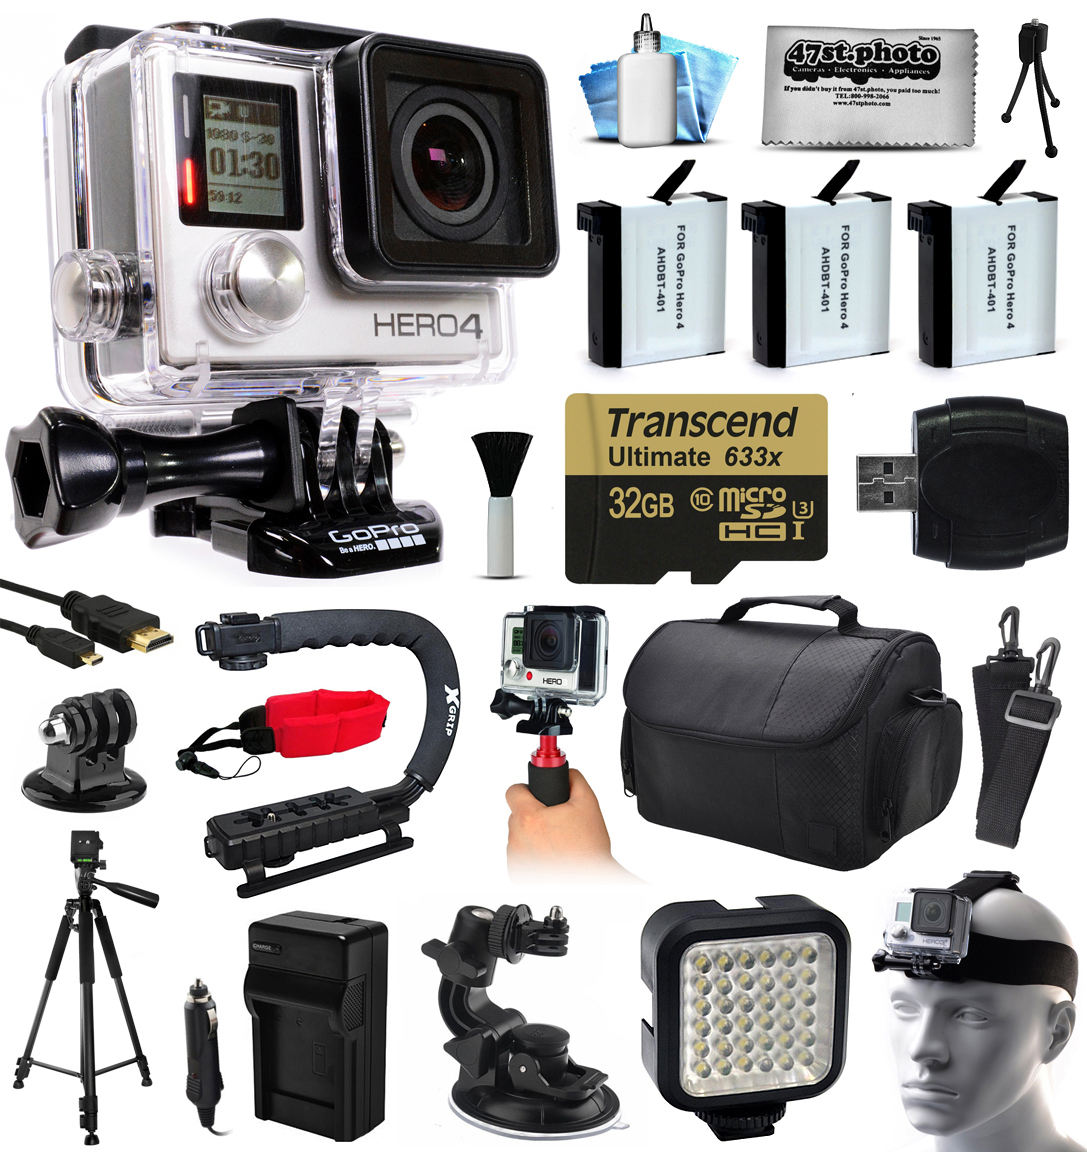 GoPro Hero 4 HERO4 Black Edition 4K Action Camera Camcorder with 32GB MicroSD, 3x Battery, Charger, Large Case, Handle, Tripod, Car Suction Cup Mount, LED Video Light, Head Helmet Strap GOPRO4BCAM32GBK8V3